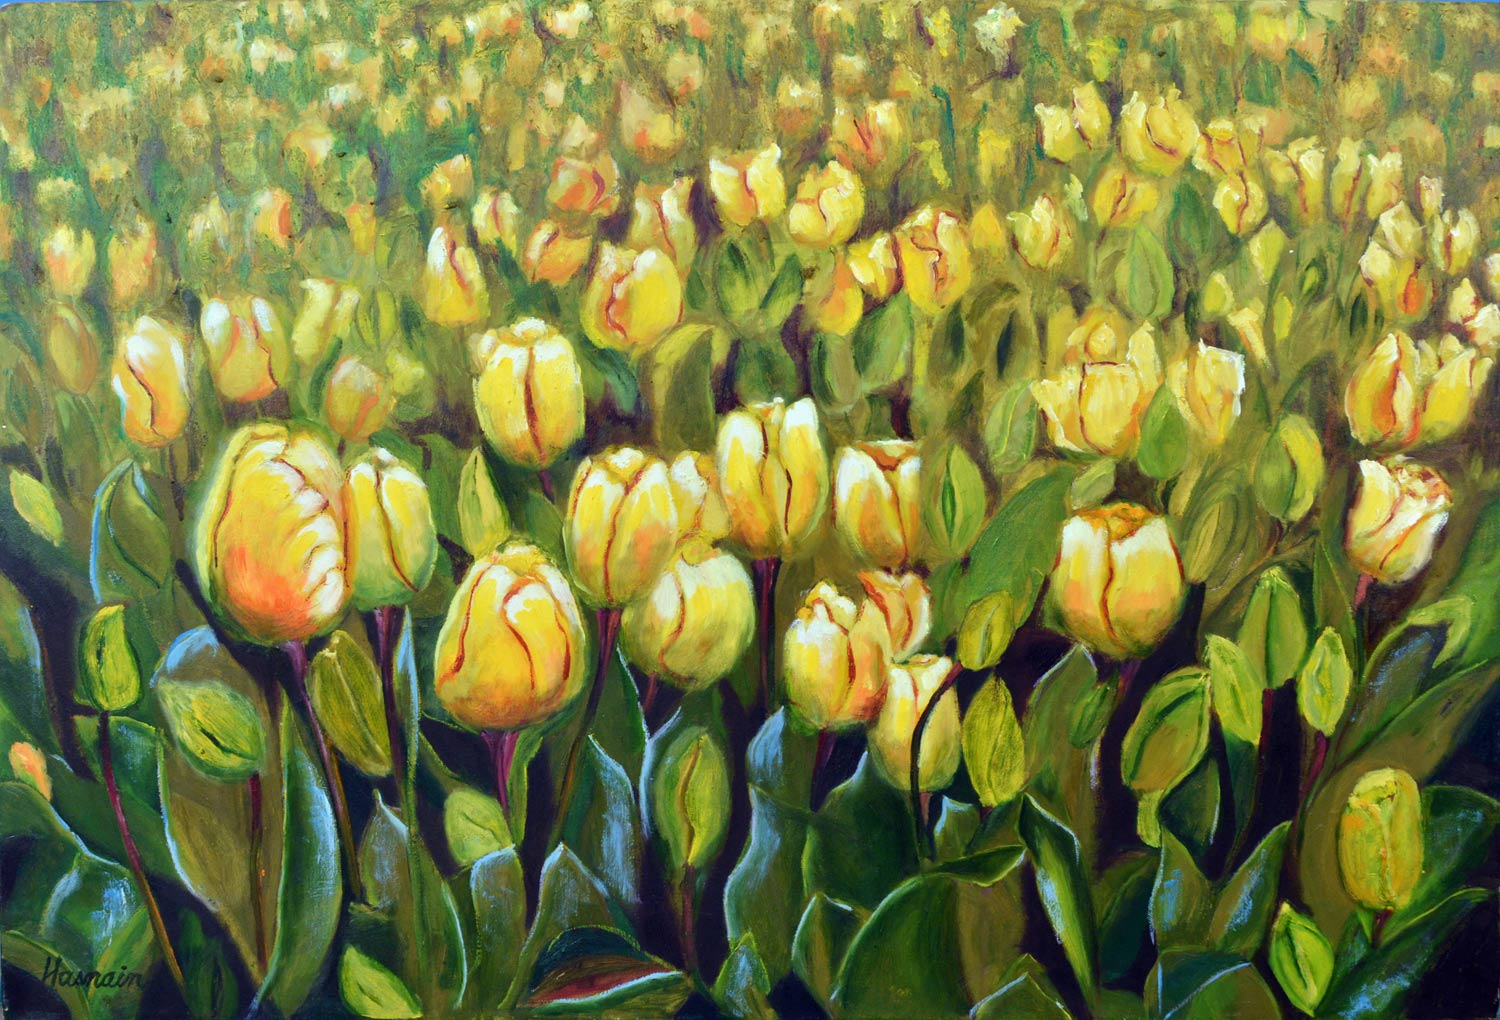 Tulips In Istanbul, 36X24 Inches,oil On Canvas, 2012